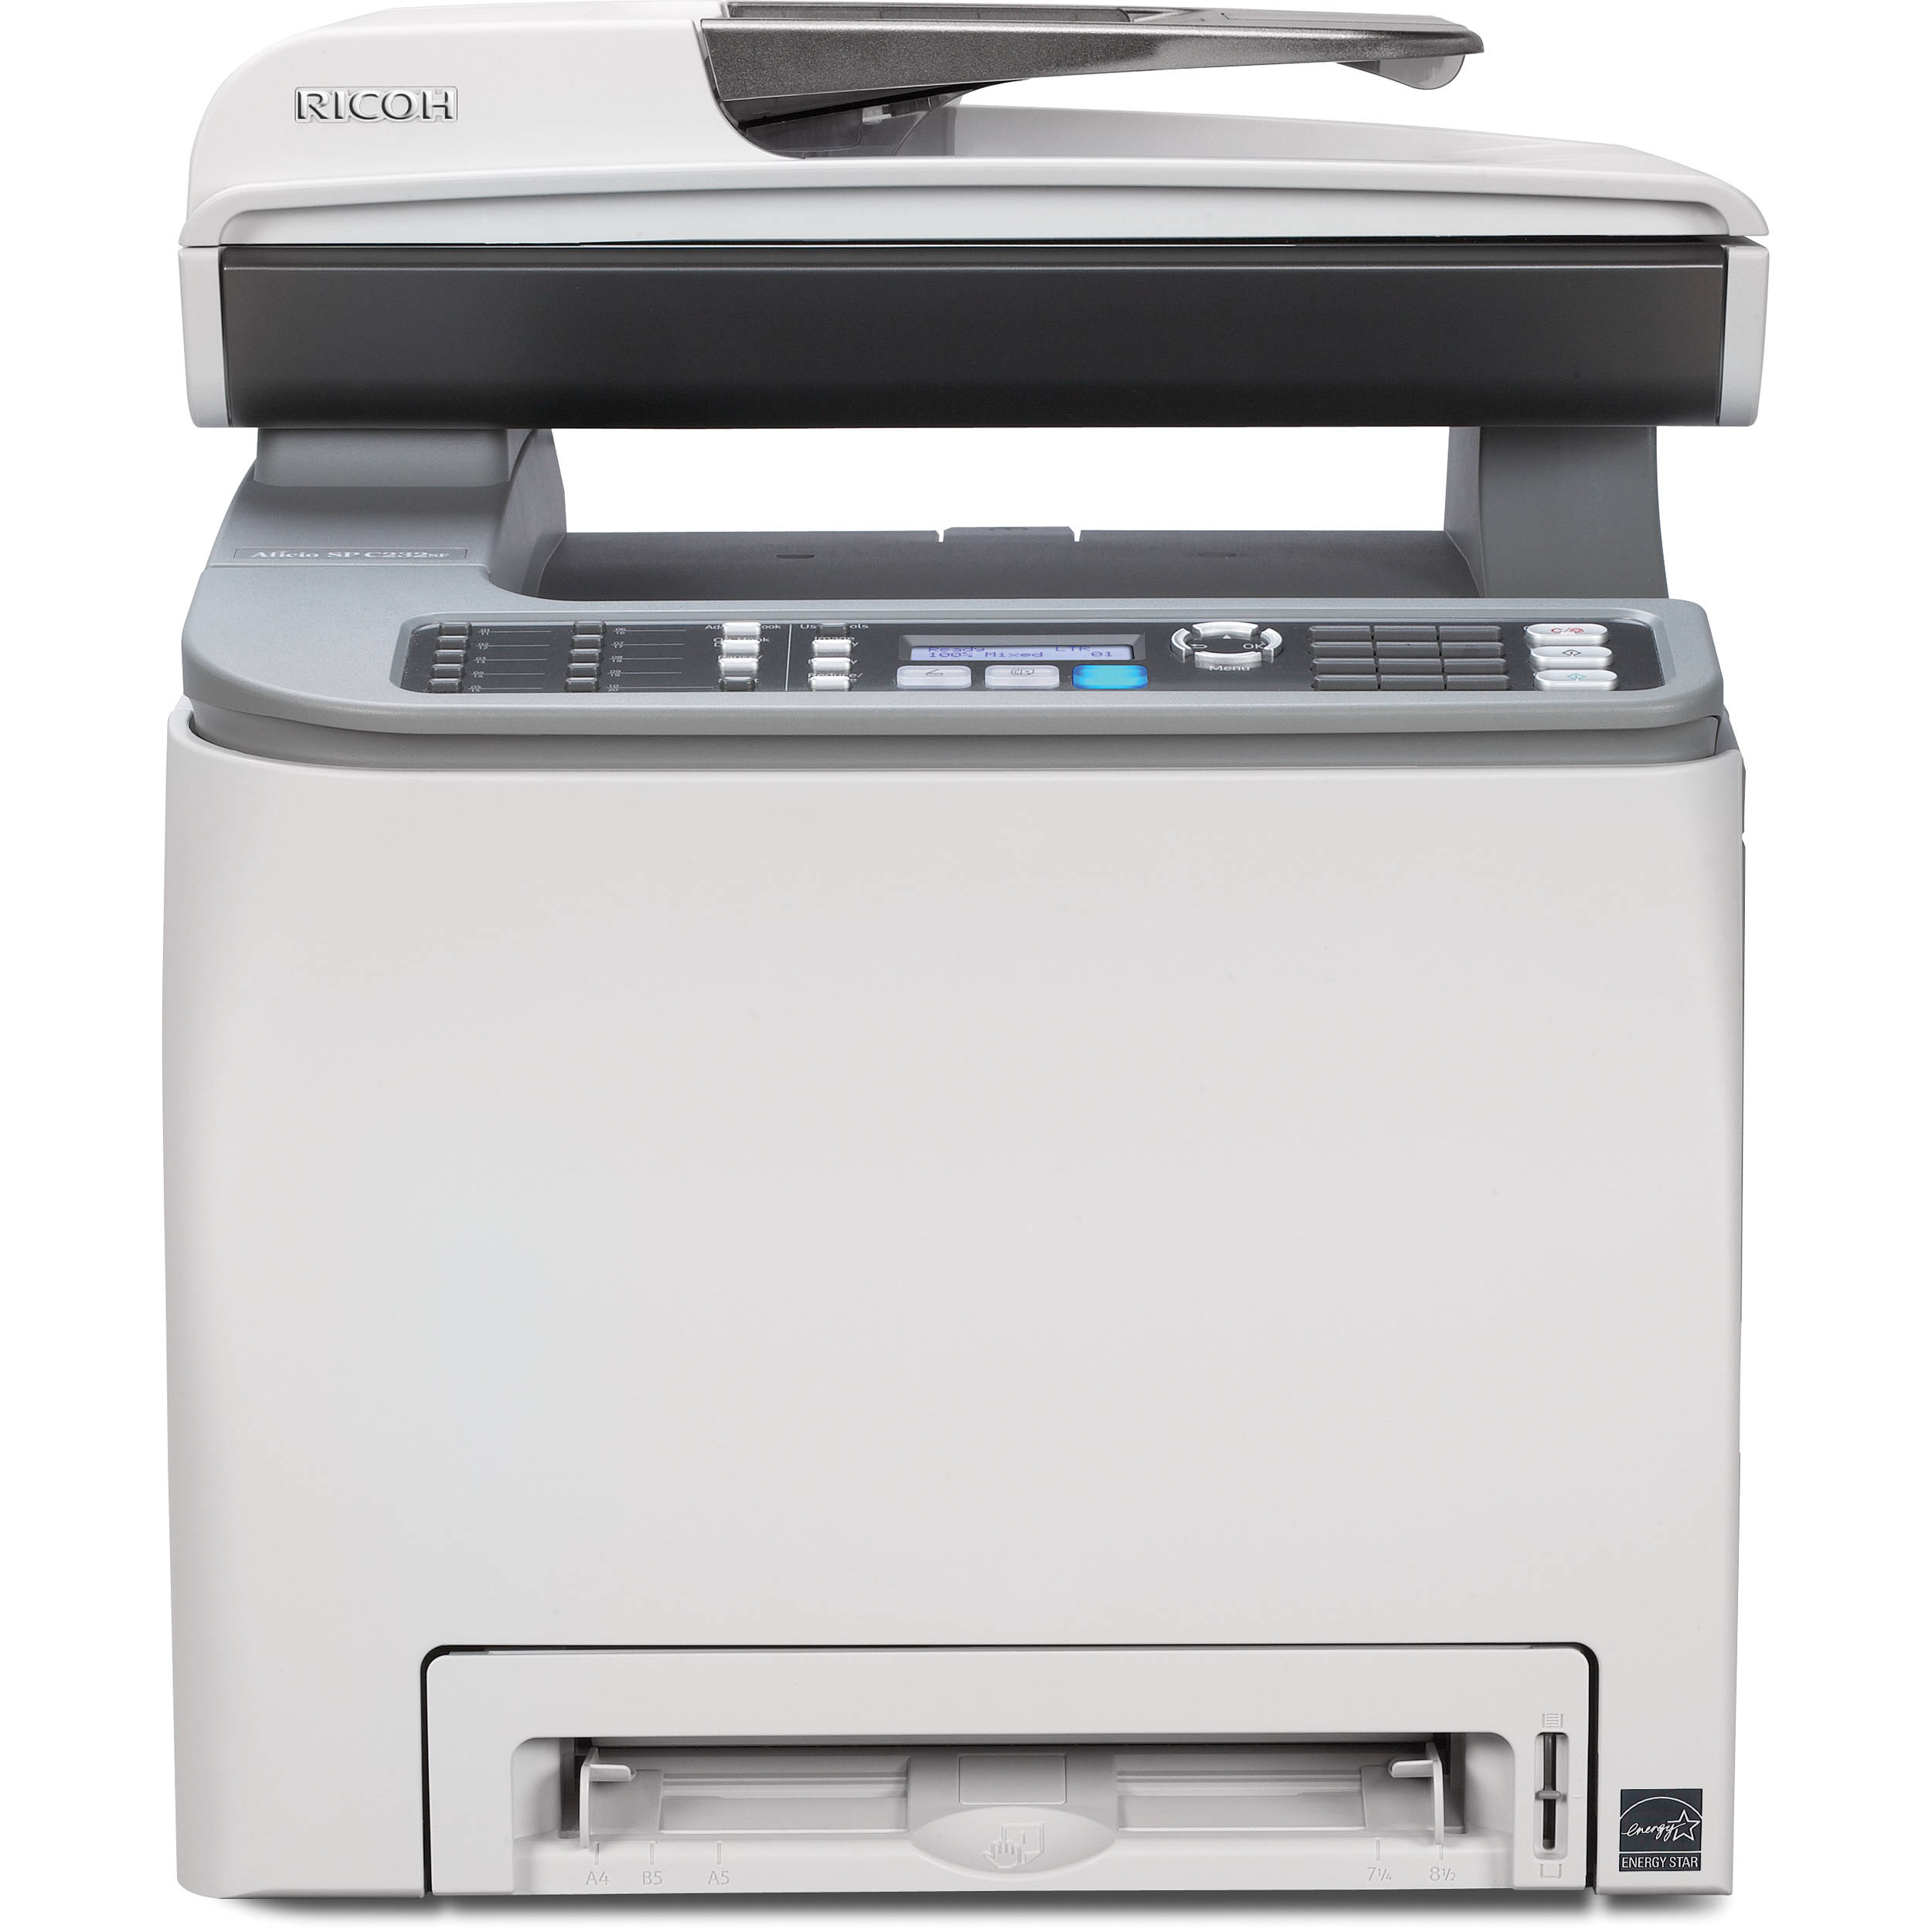 Ricoh Aficio SP C231SF Multifunction DDST Printer Driver FREE